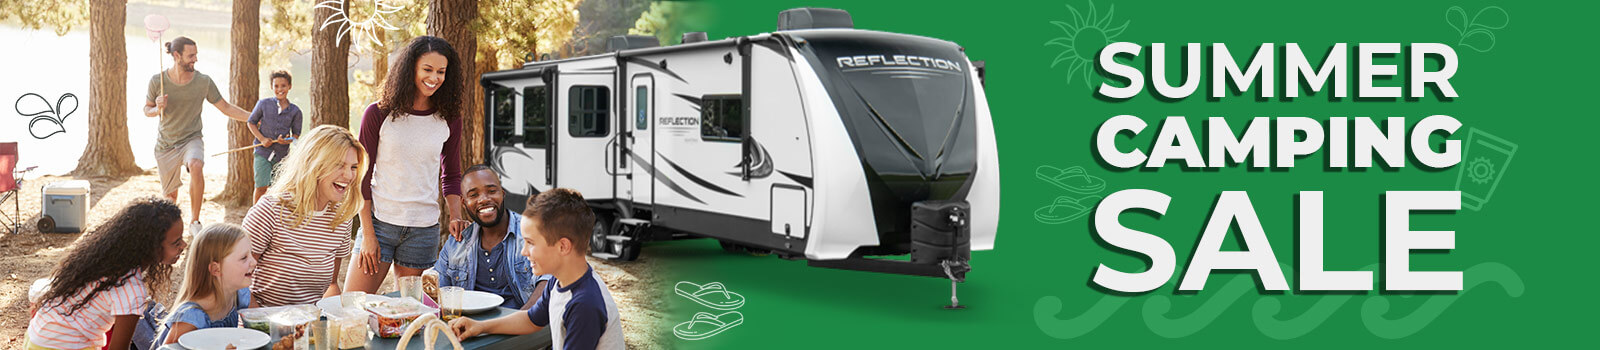 Summer Camping Sale